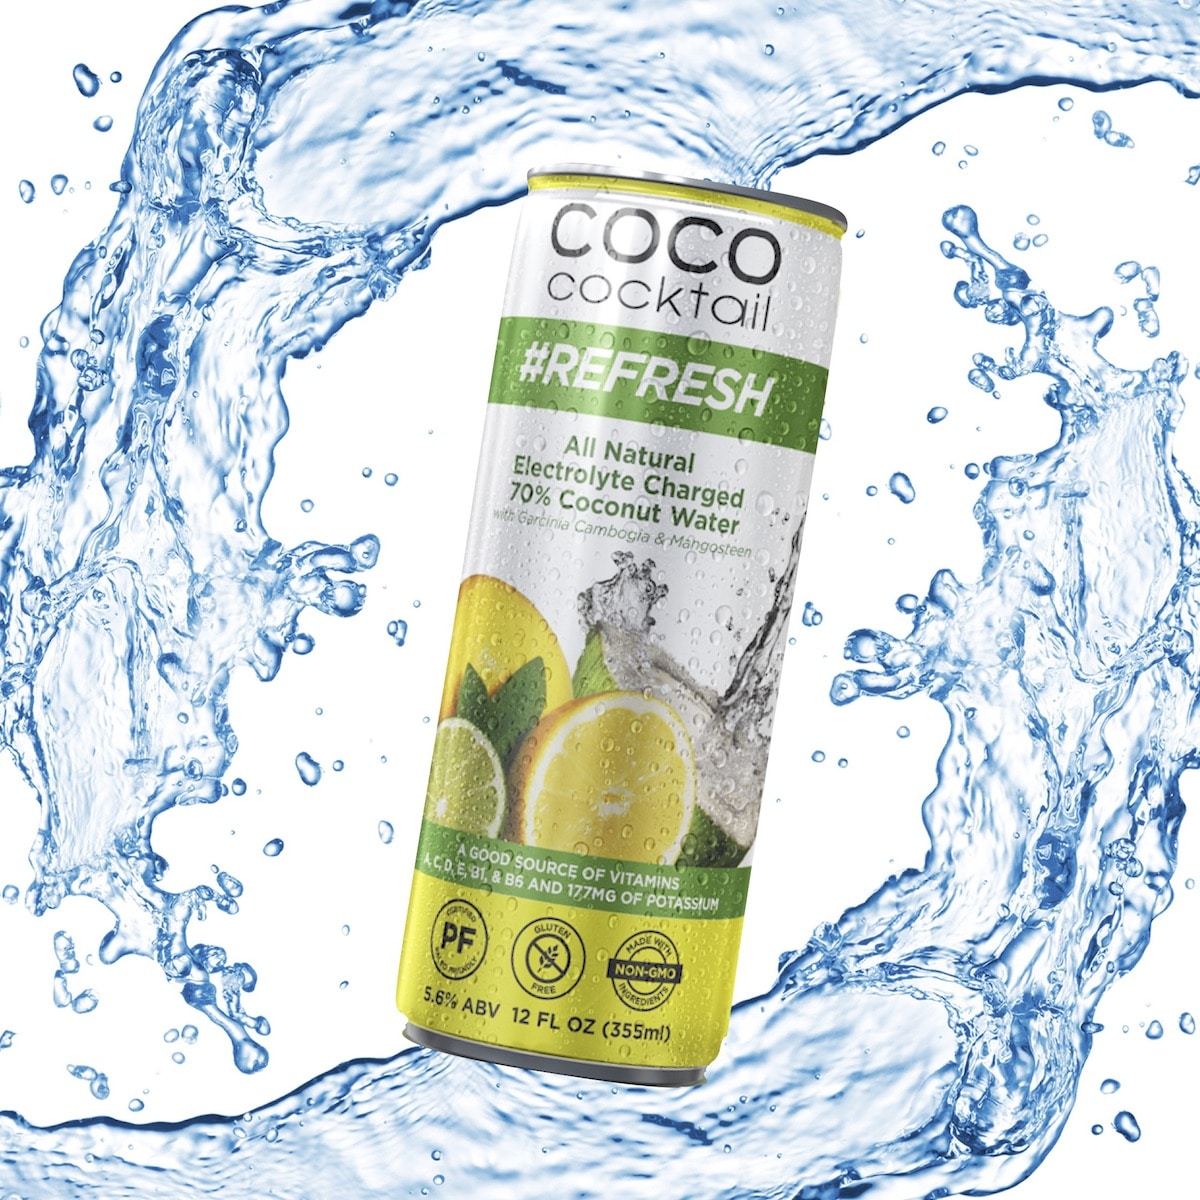 Coco Cocktail Spiked Sparkling Coconut Water Paleo Foundation